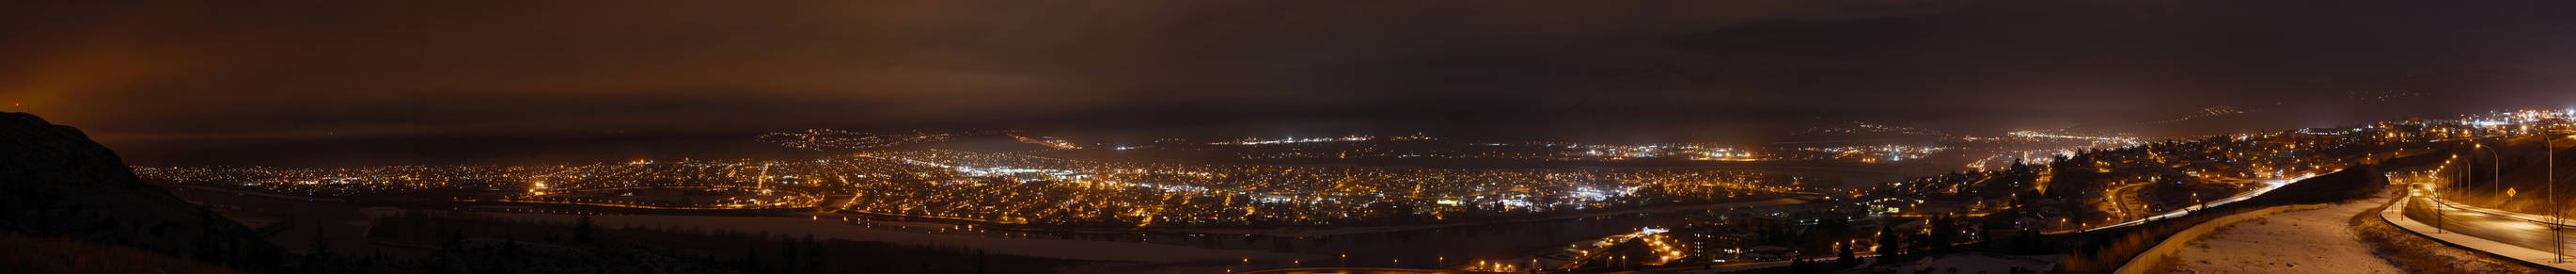 Kamloops, superwide